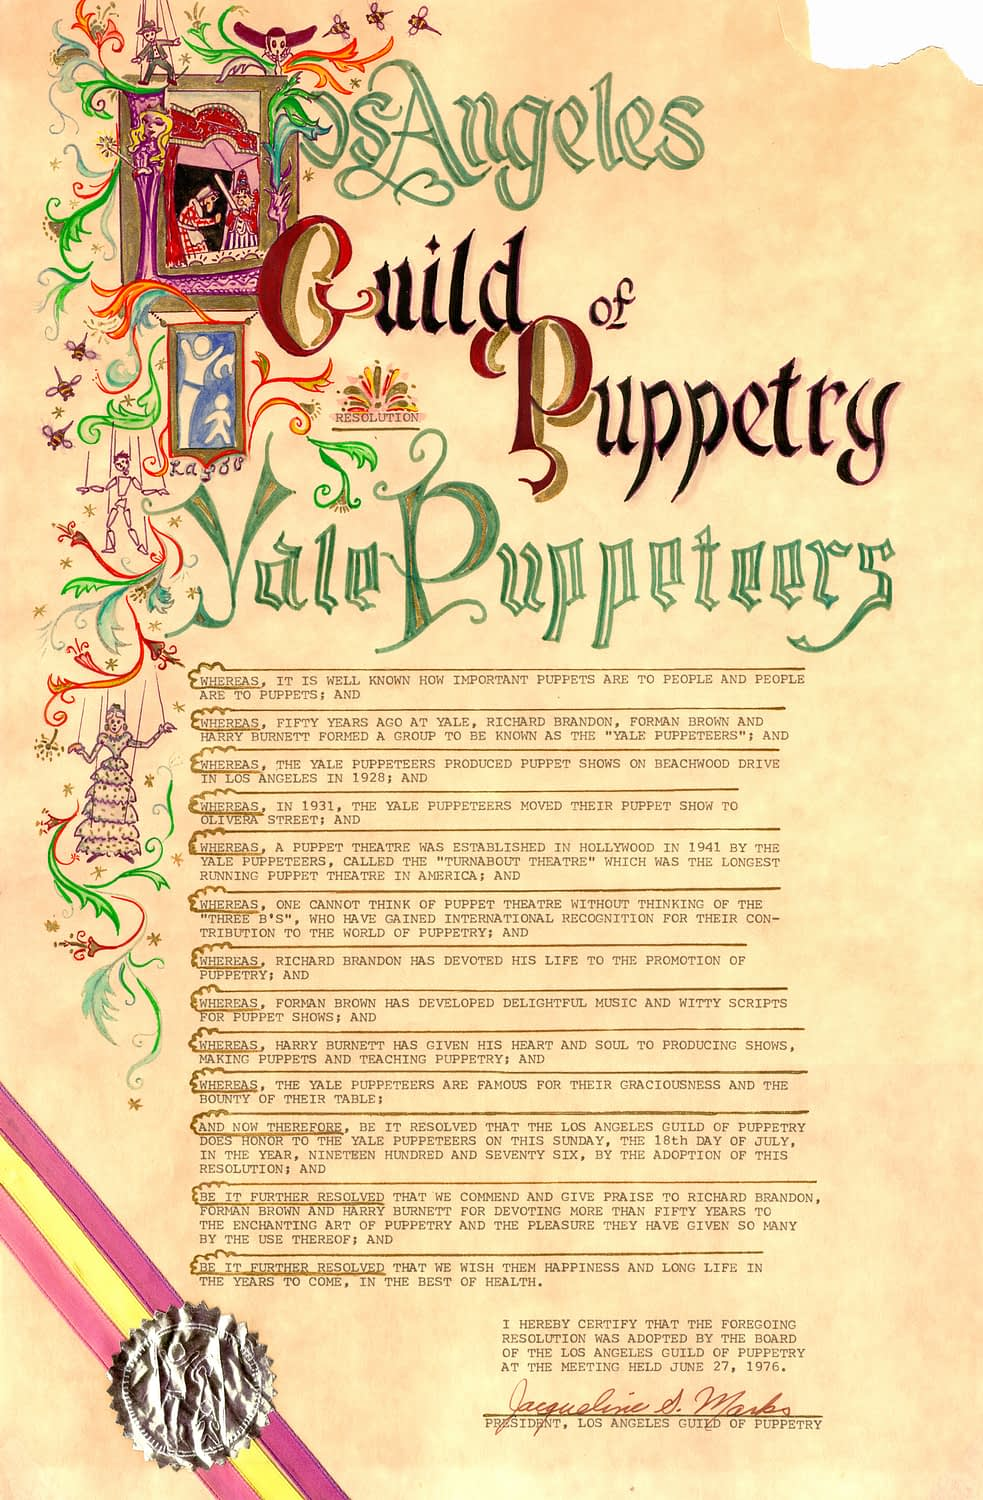 Los Angeles Guild of Puppetry Proclamation Certificate